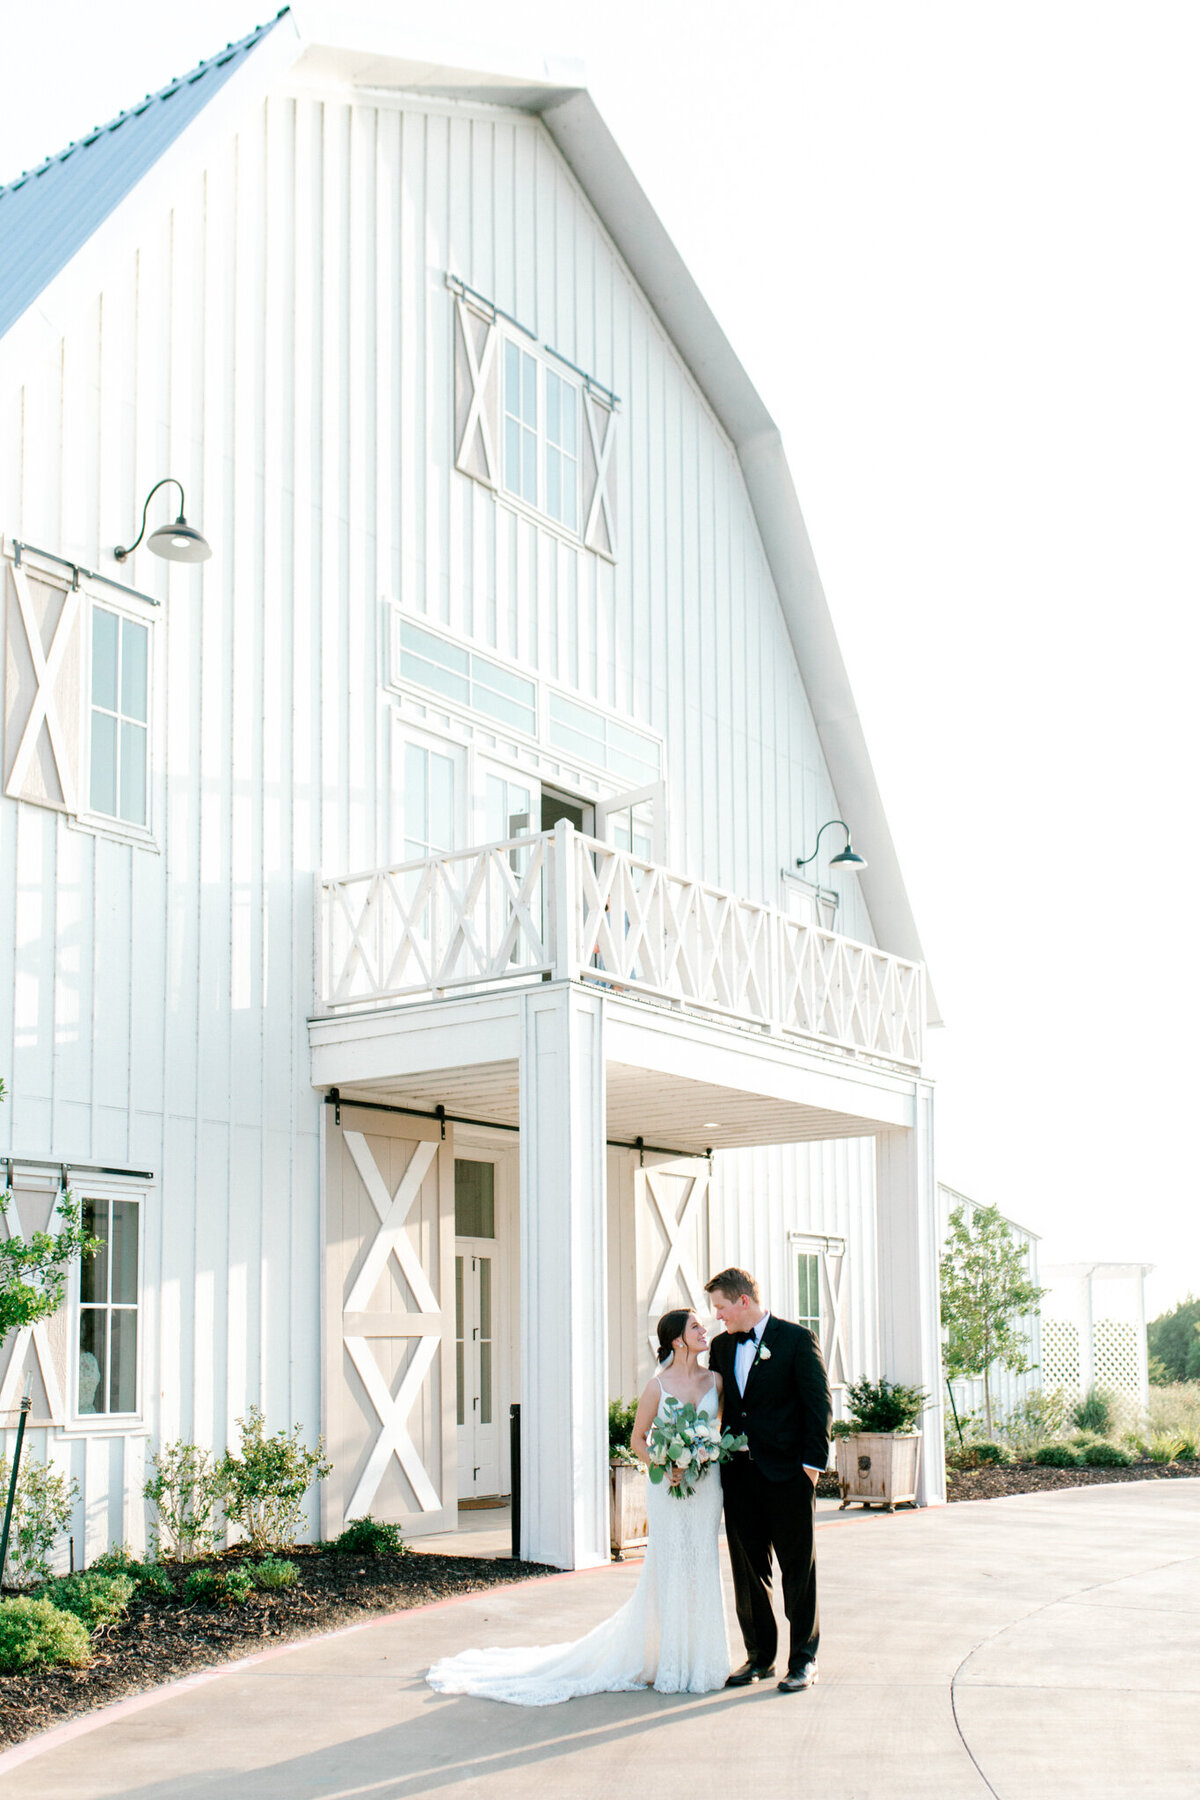 Anna & Billy's Wedding at The Nest at Ruth Farms | Dallas Wedding Photographer | Sami Kathryn Photography-177